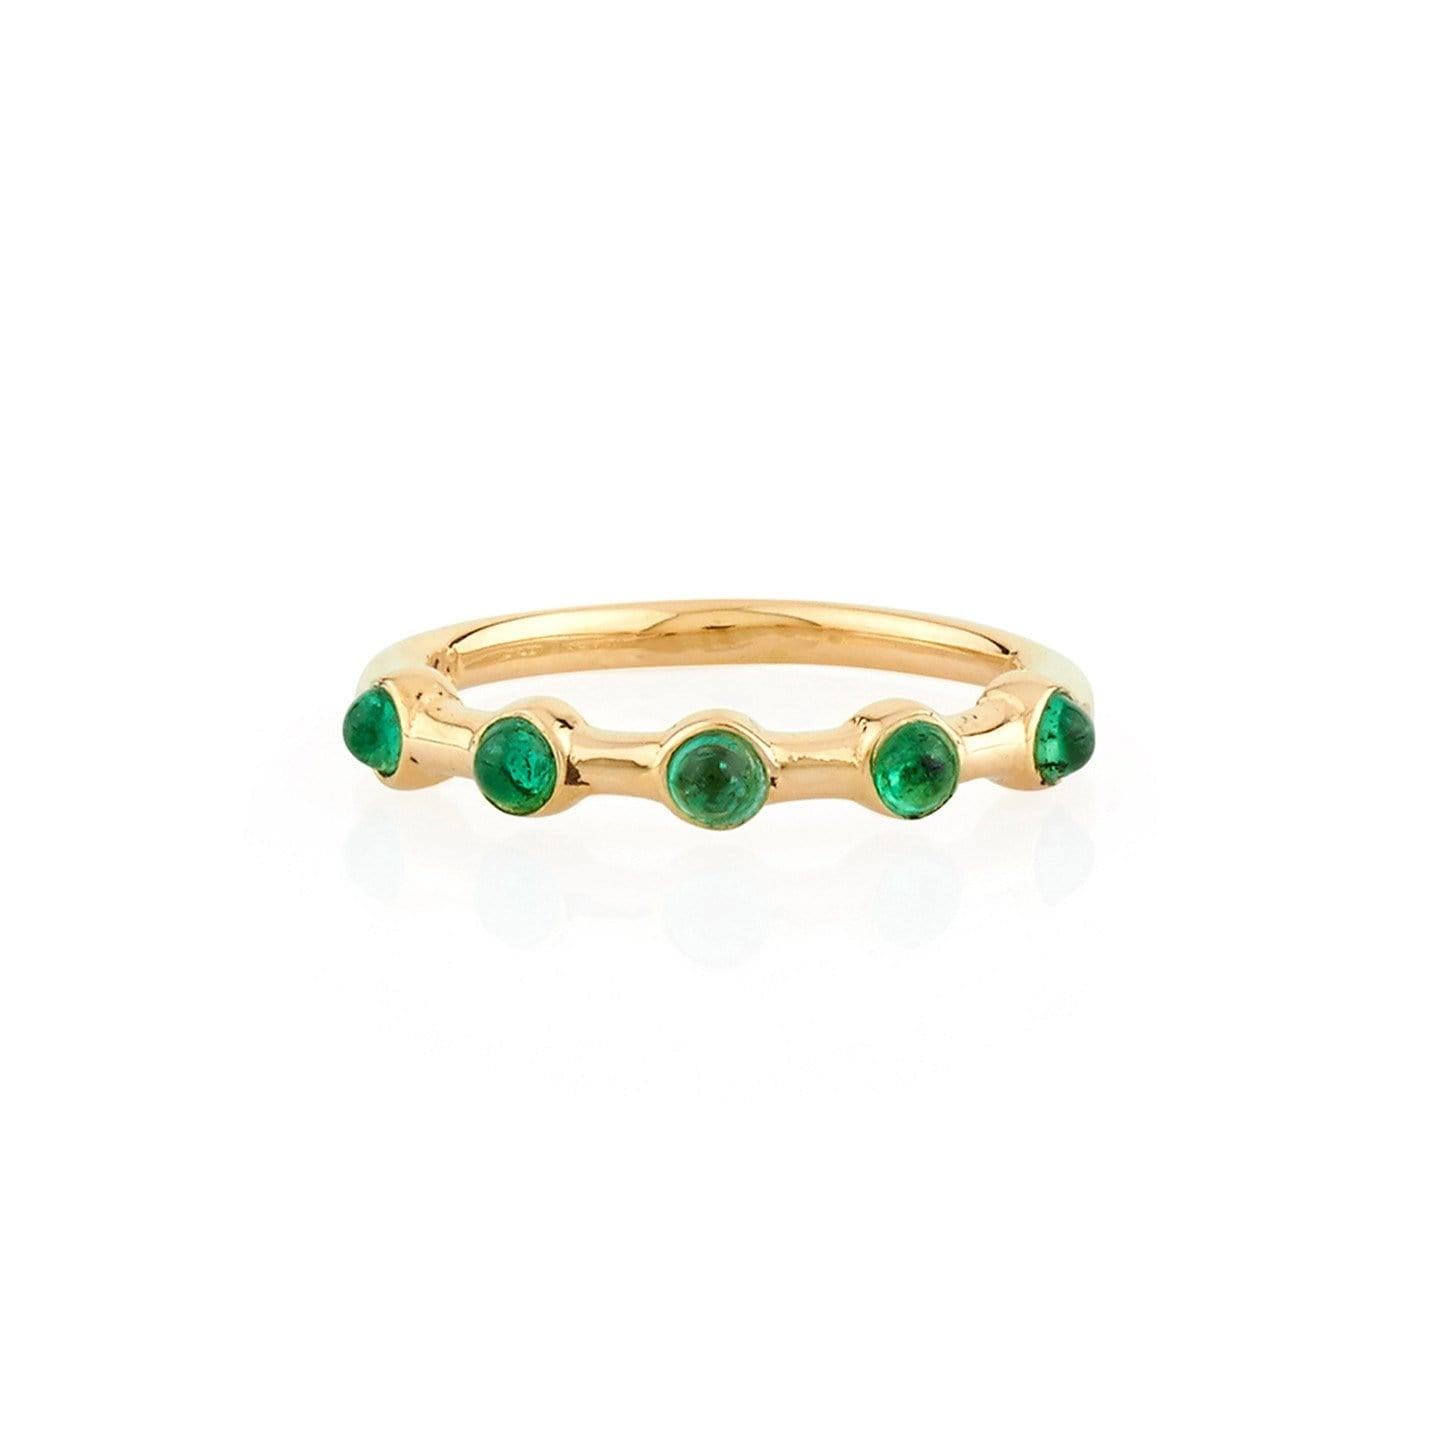 5 cabochon emerald gold band